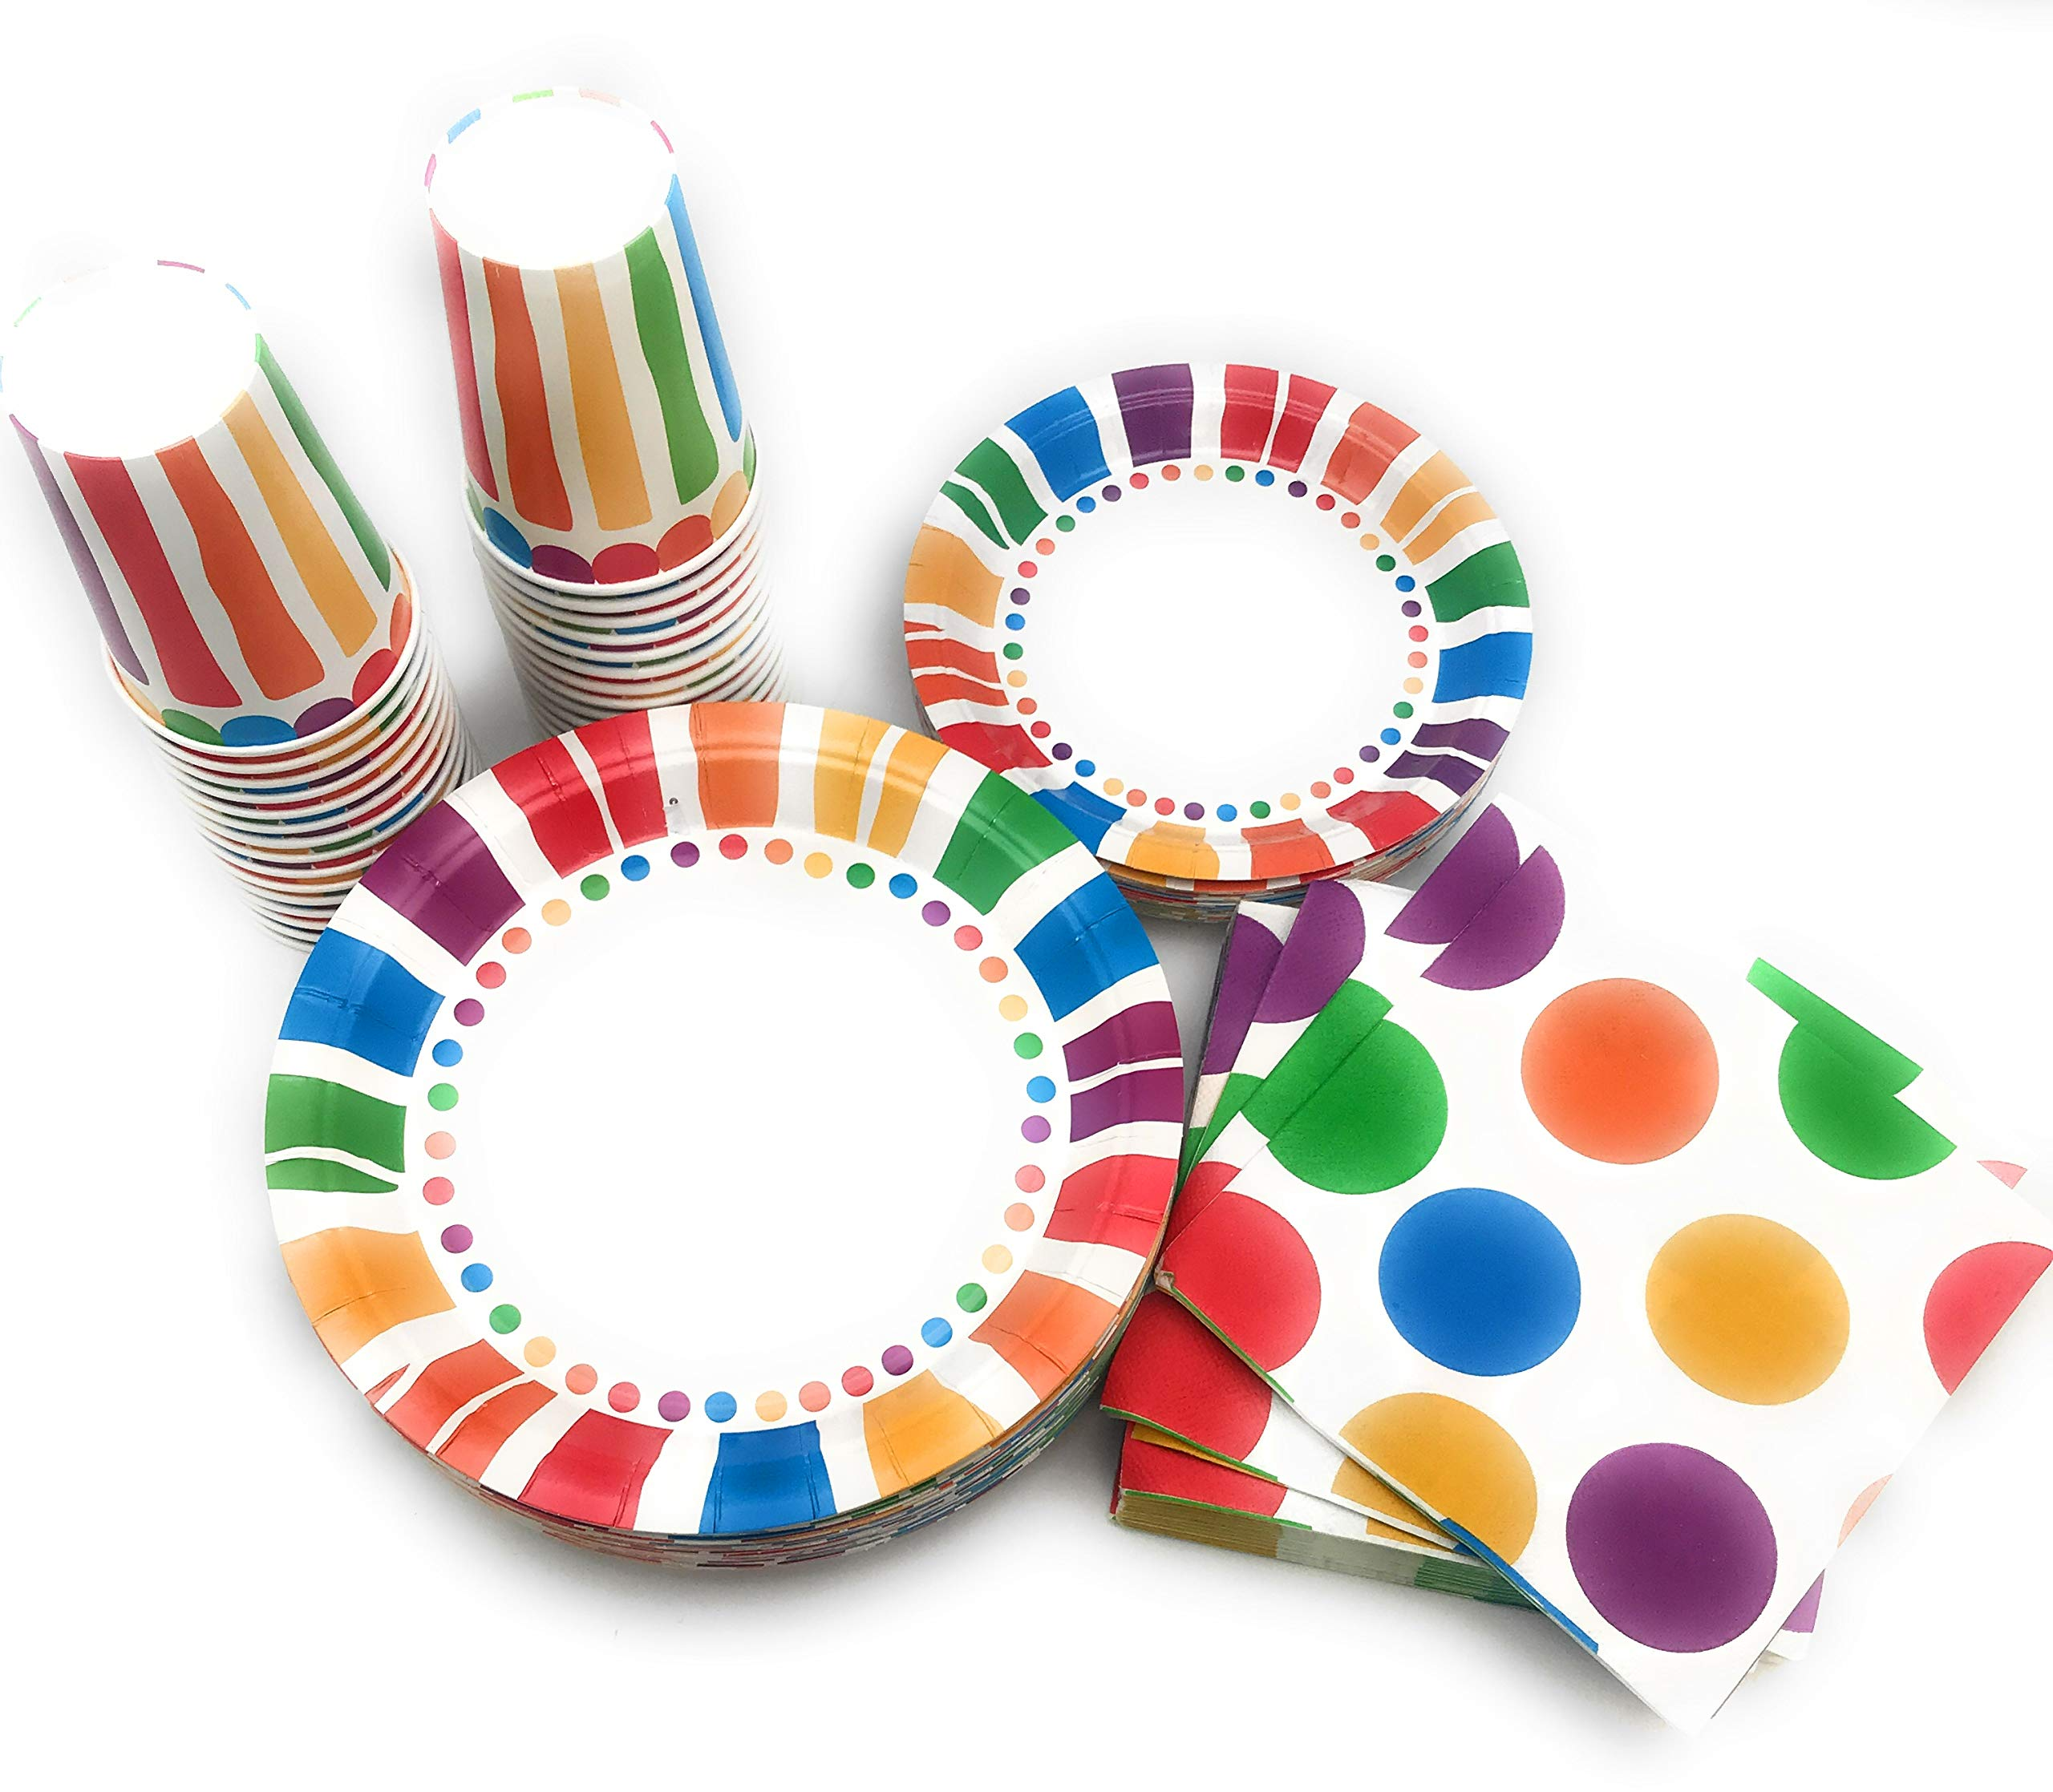 Serves 30 Rainbow Party Pack | 30 cups 9 oz | 30 Dessert Plates 7'' | 30 Dinner Plates 9'' | 30 Napkins | Serves 30 by Oojami (Image #2)